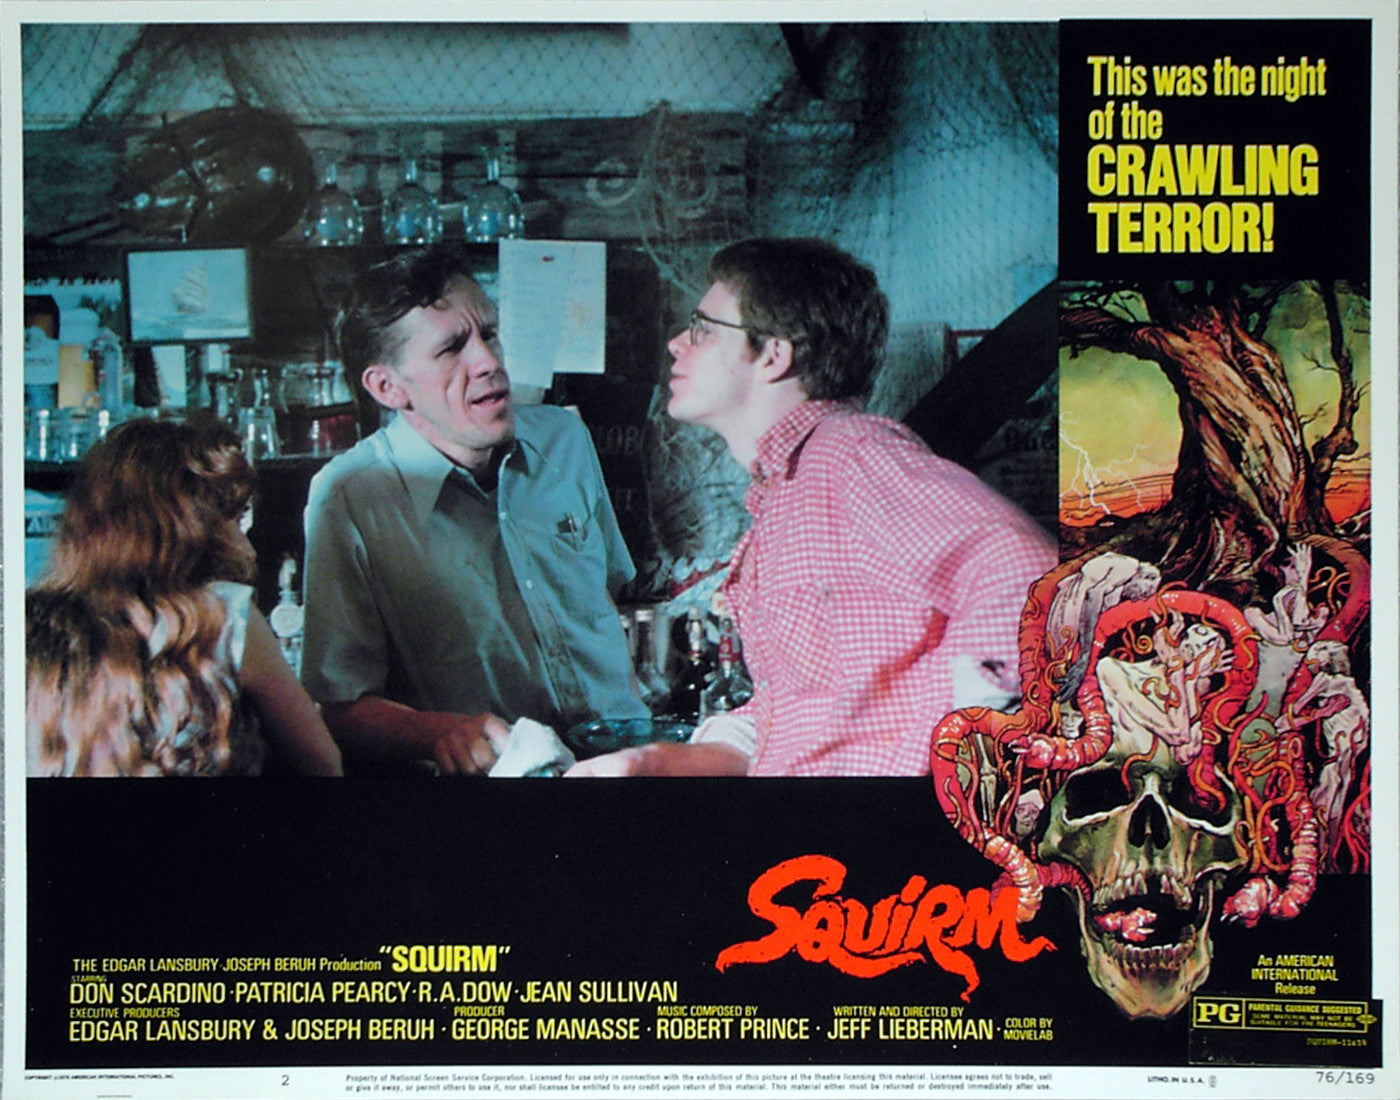 SQUIRM - US lobby card v2